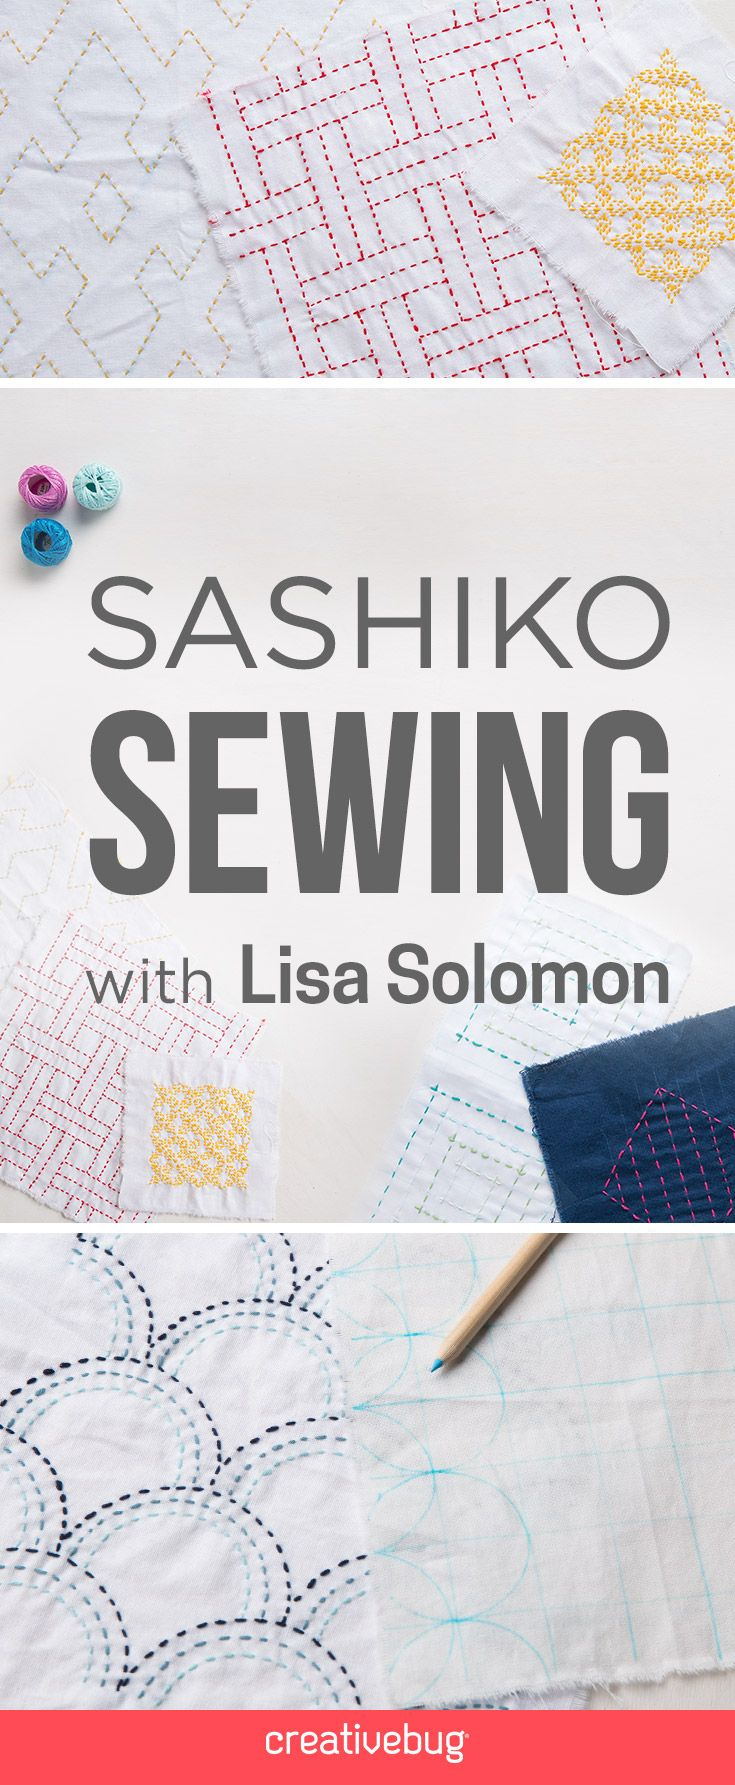 Sashiko Stitching class on CreativeBug - would be great to do with a free trial   affiliate #stitching #sashiko #tutorial #class #creativebug